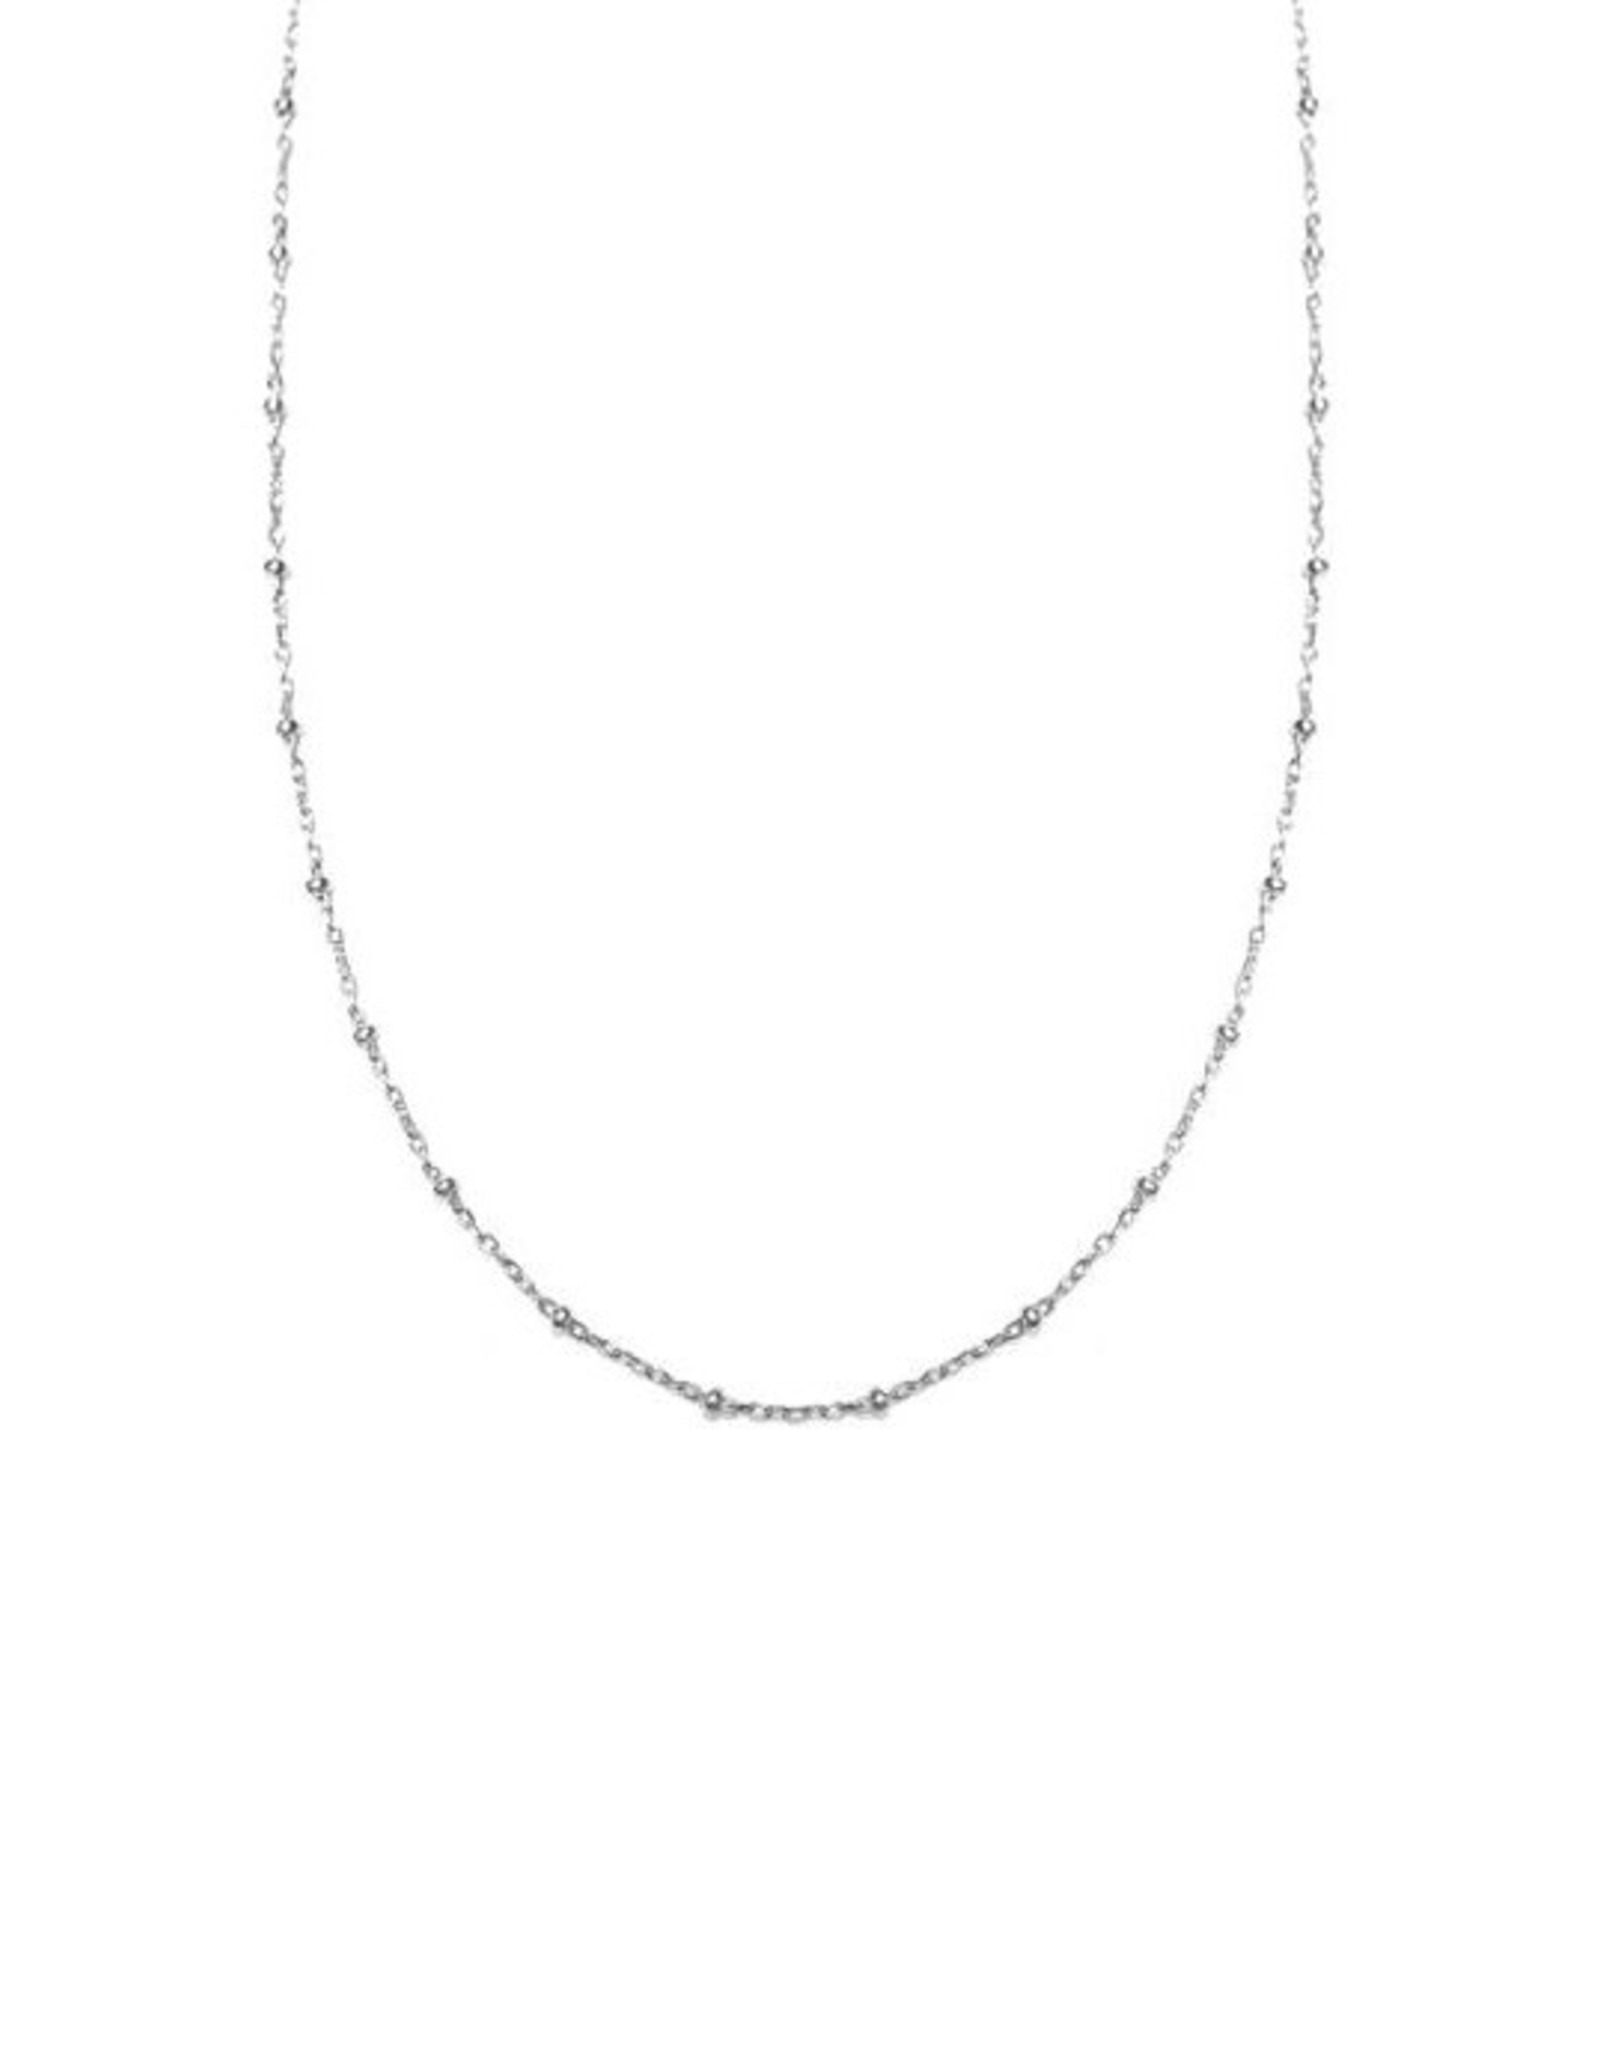 Hart + Stone Dotted Necklace - Sterling Silver